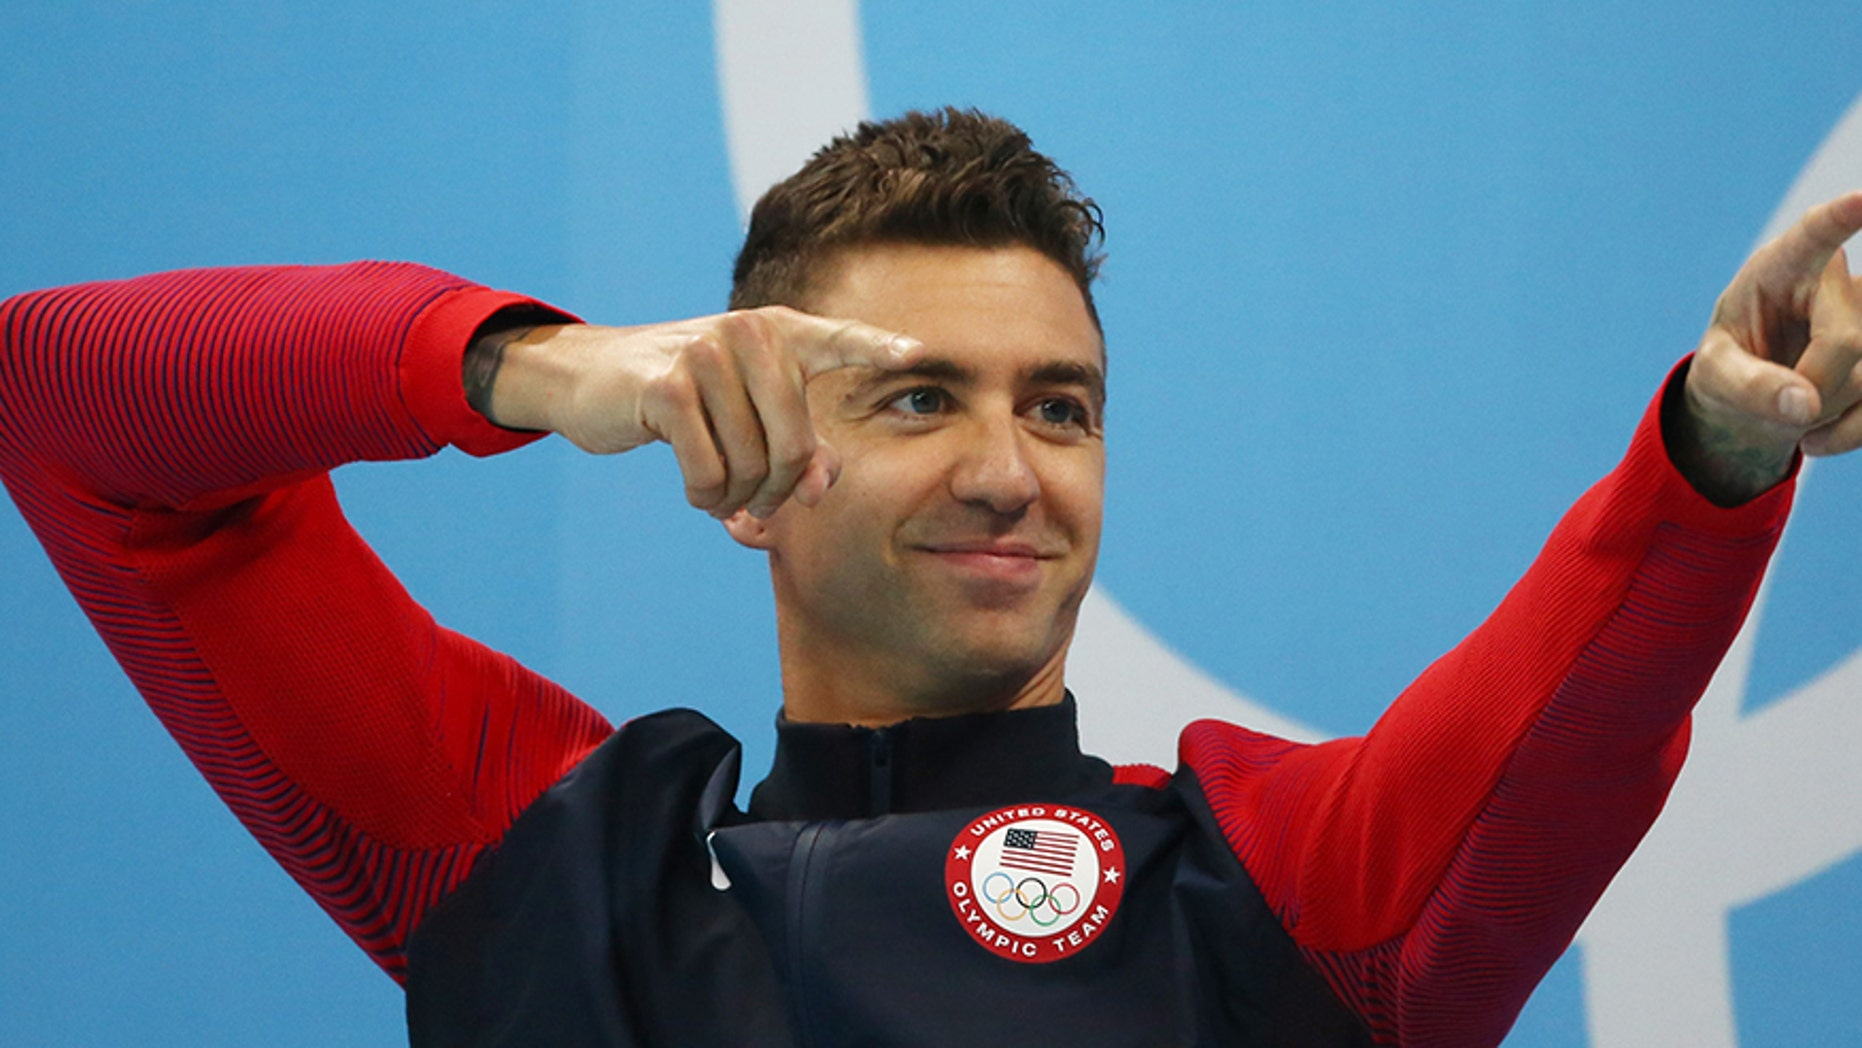 U.S. Olympic gold medal swimmer Anthony Ervin took a knee during the national anthem after he anchored Team USA's mixed 200-meter medley race in Brazil.